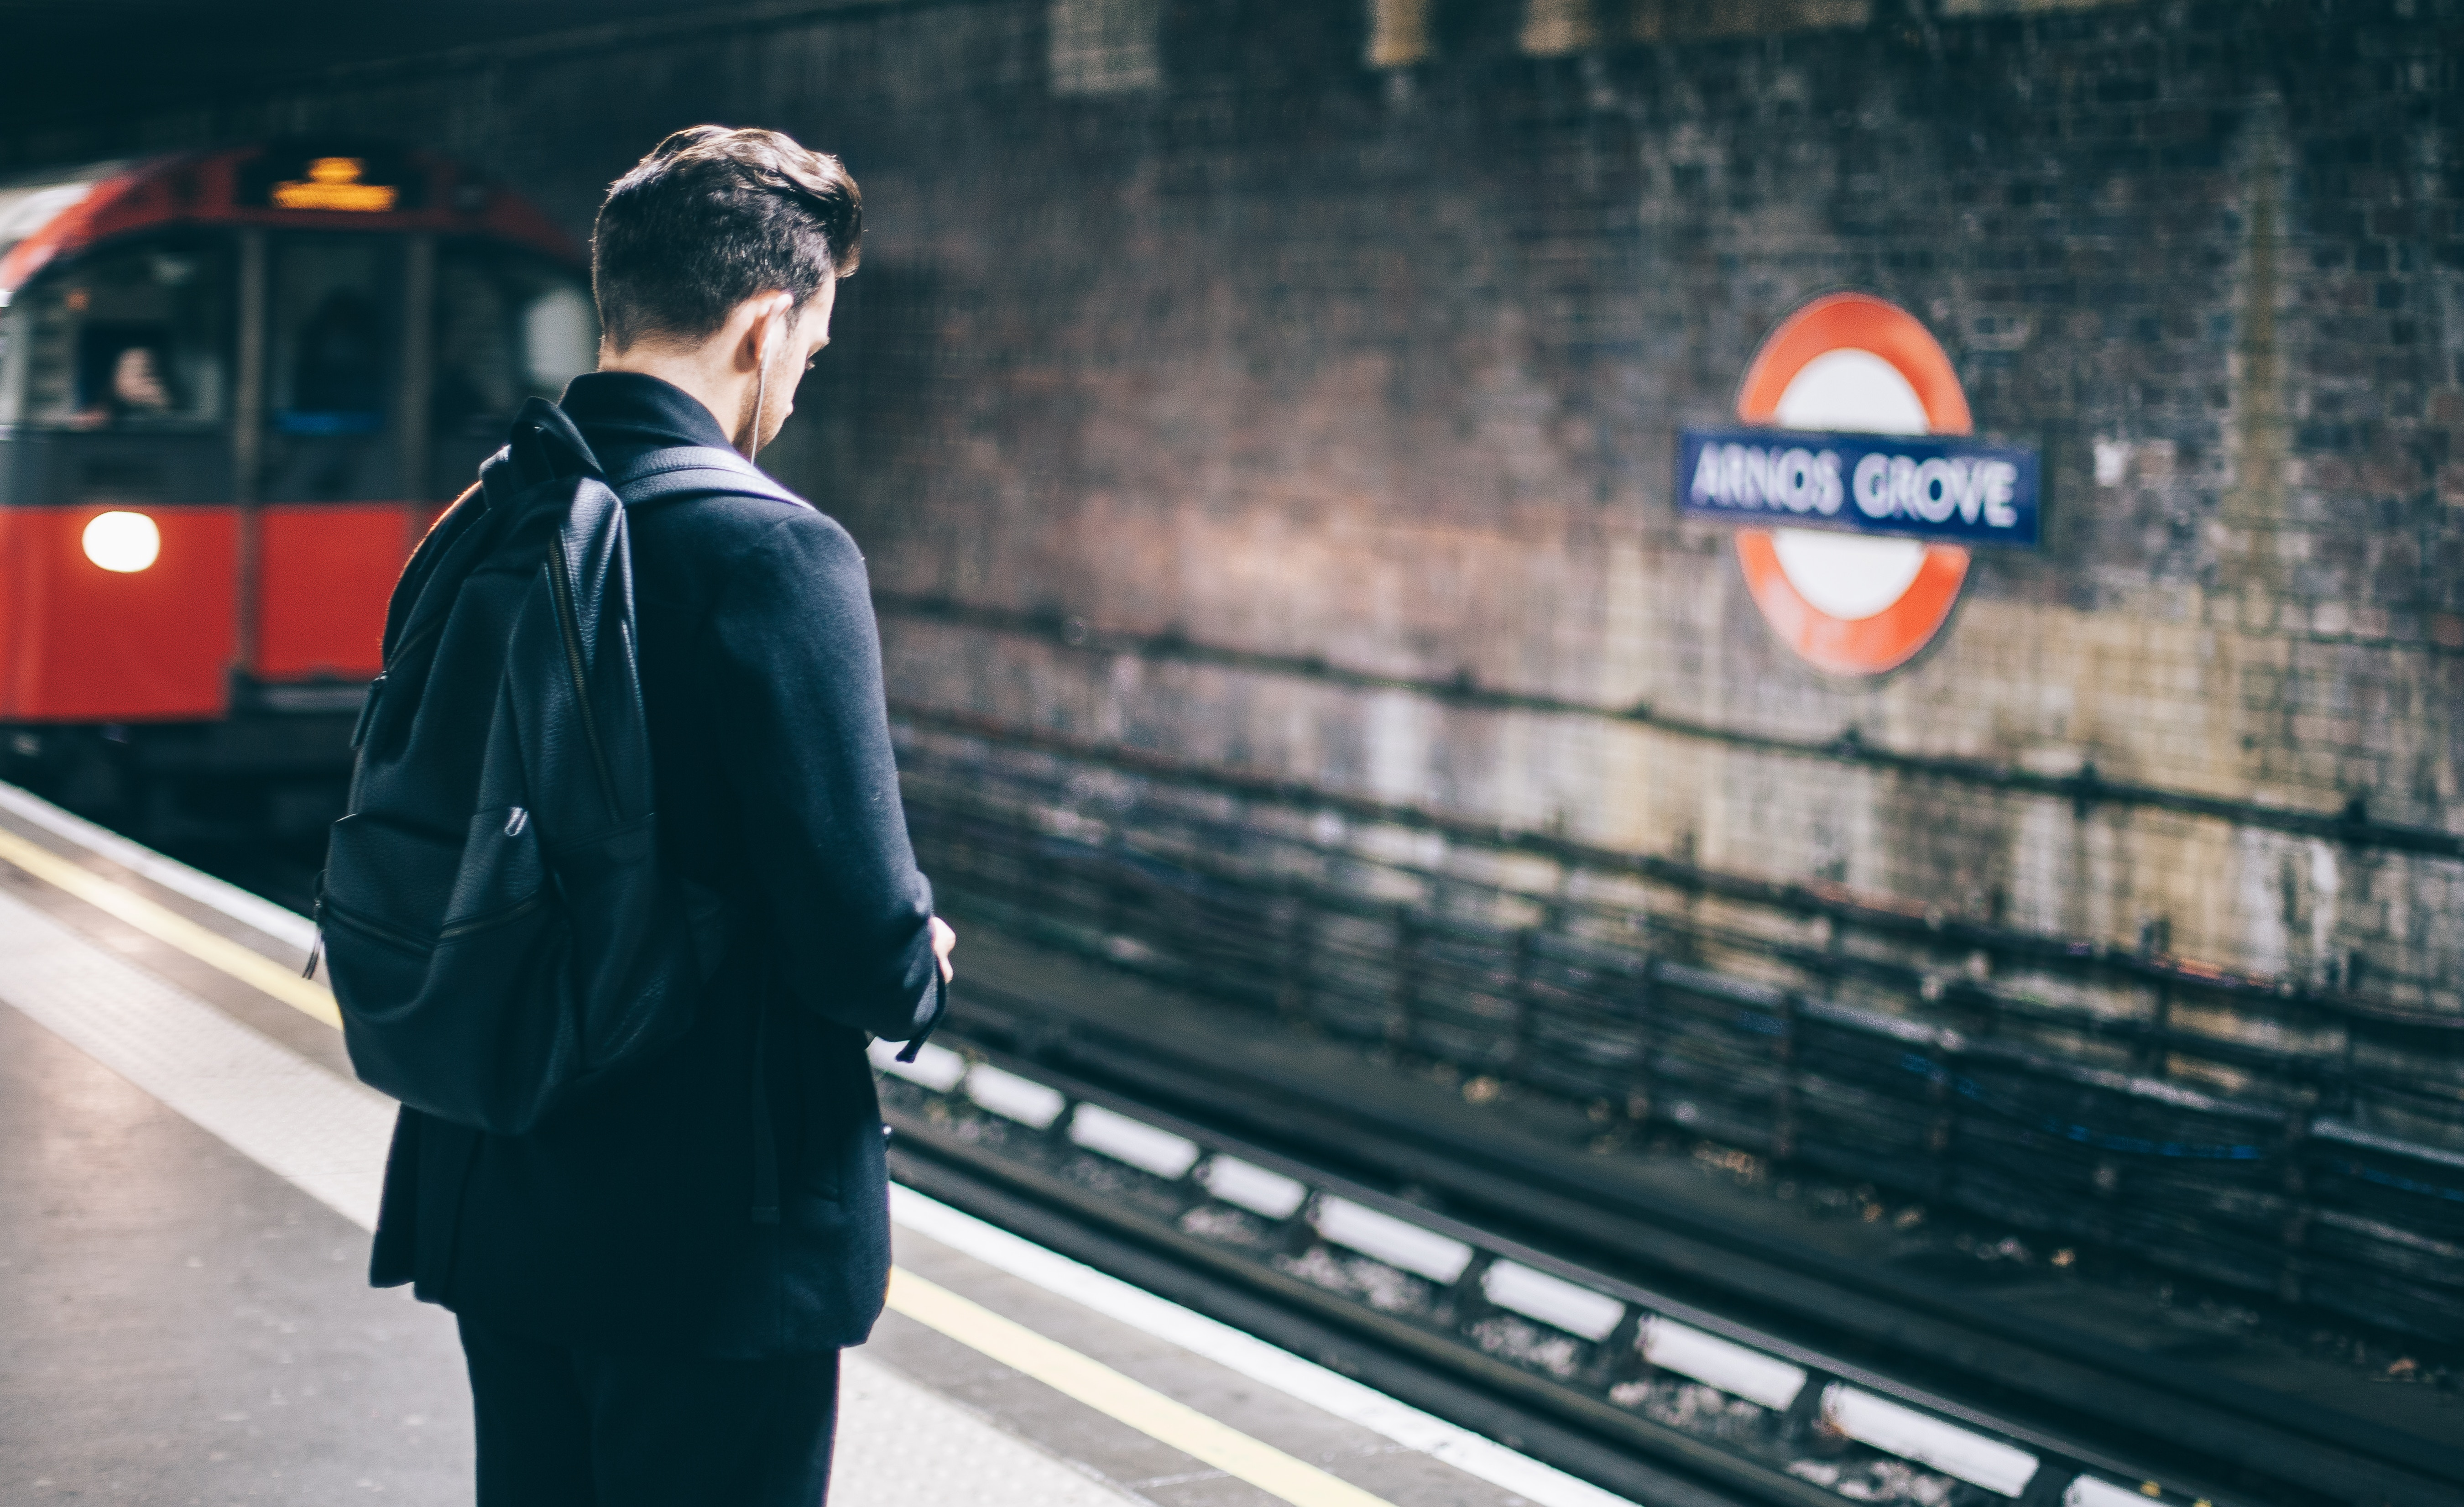 A man waiting for the tube - sustainable film production.